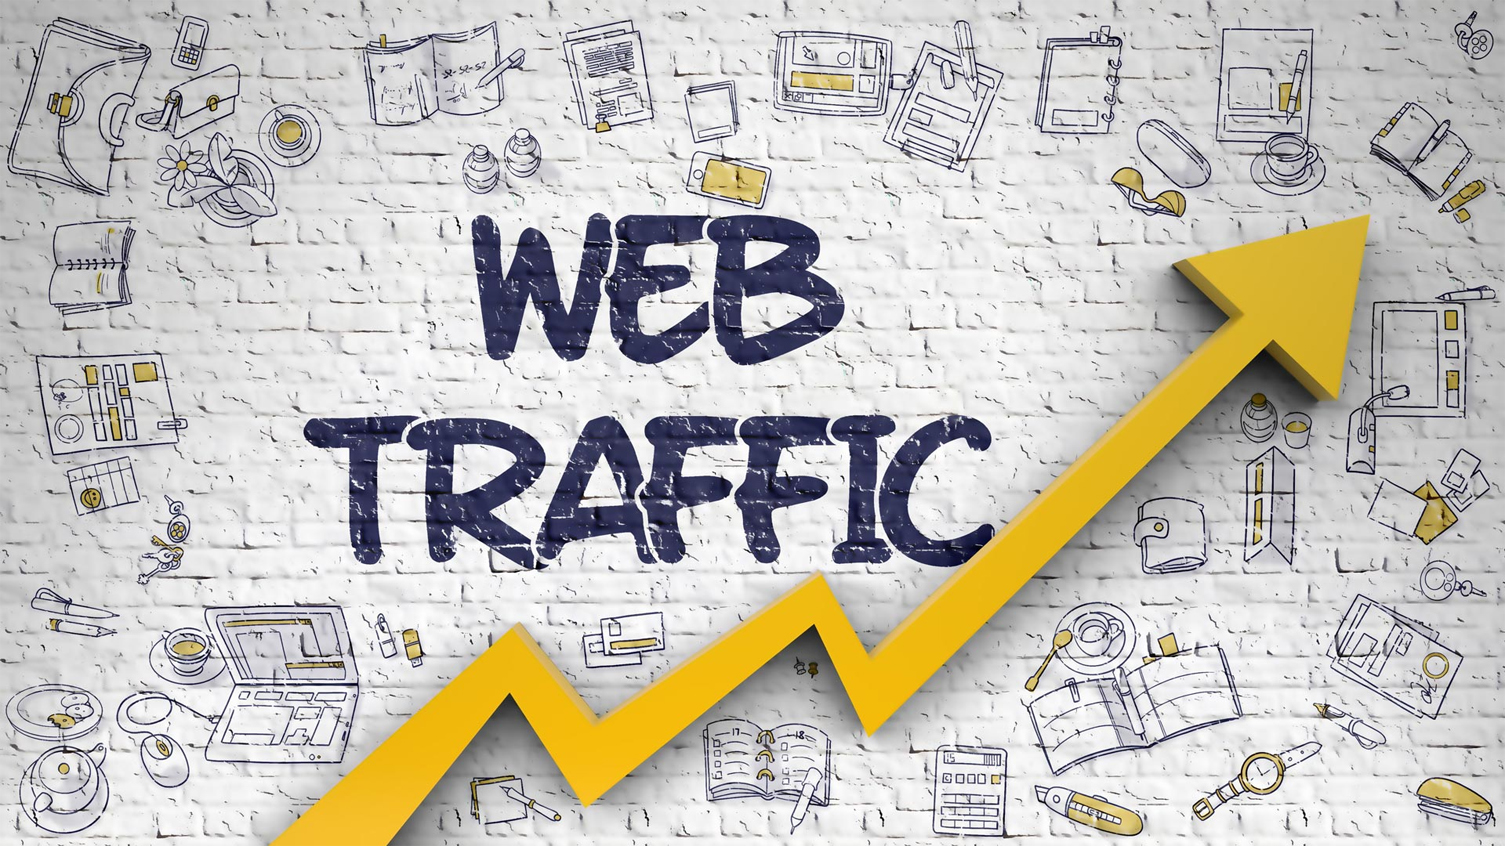 I WILL DIRECT 1000 REAL HUMAN TRAFFIC TO YOUR BLOG/WEBSITE